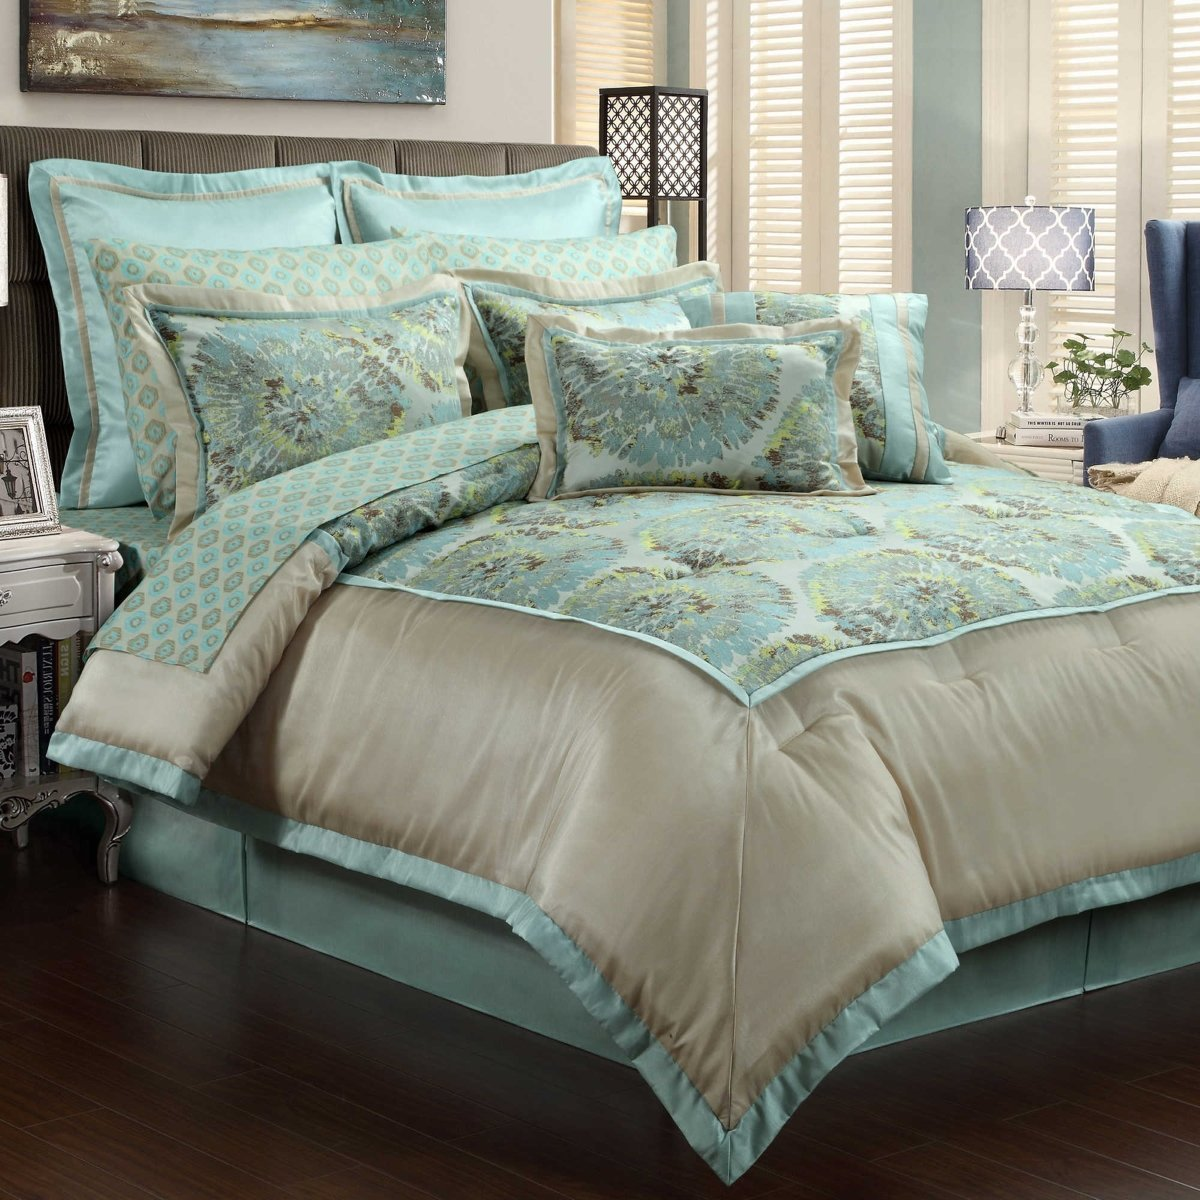 Queen Bed Set Queen Bedding Sets Freedom Of Life Like A Queen Home